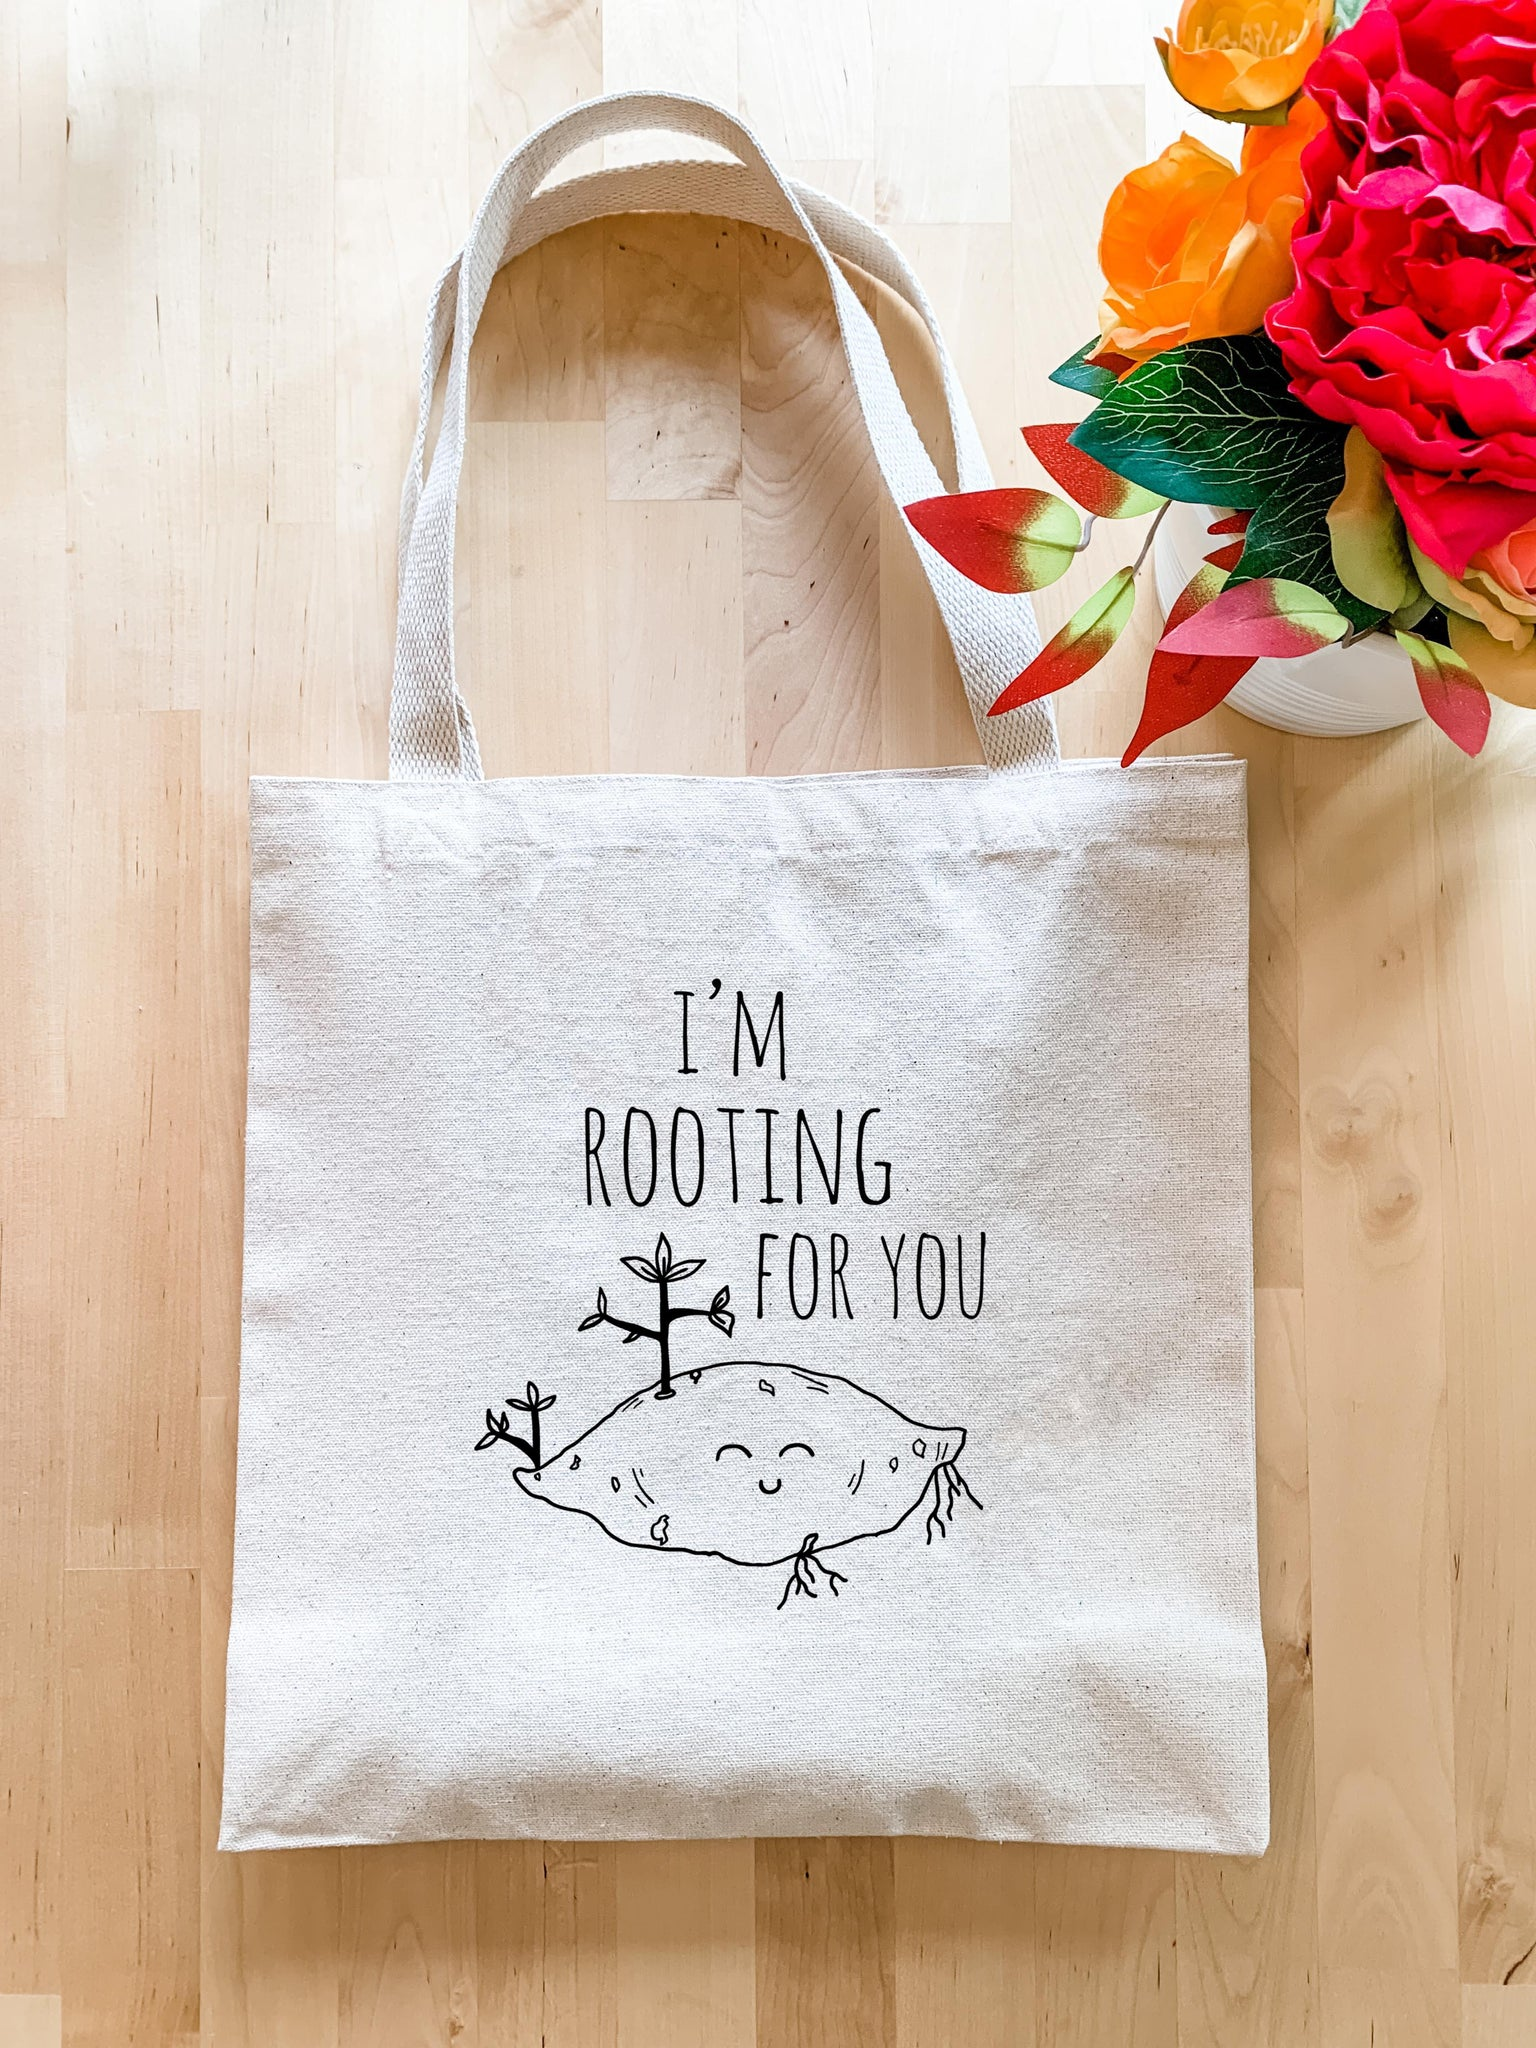 I'm Rooting For You - Tote Bag - MoonlightMakers